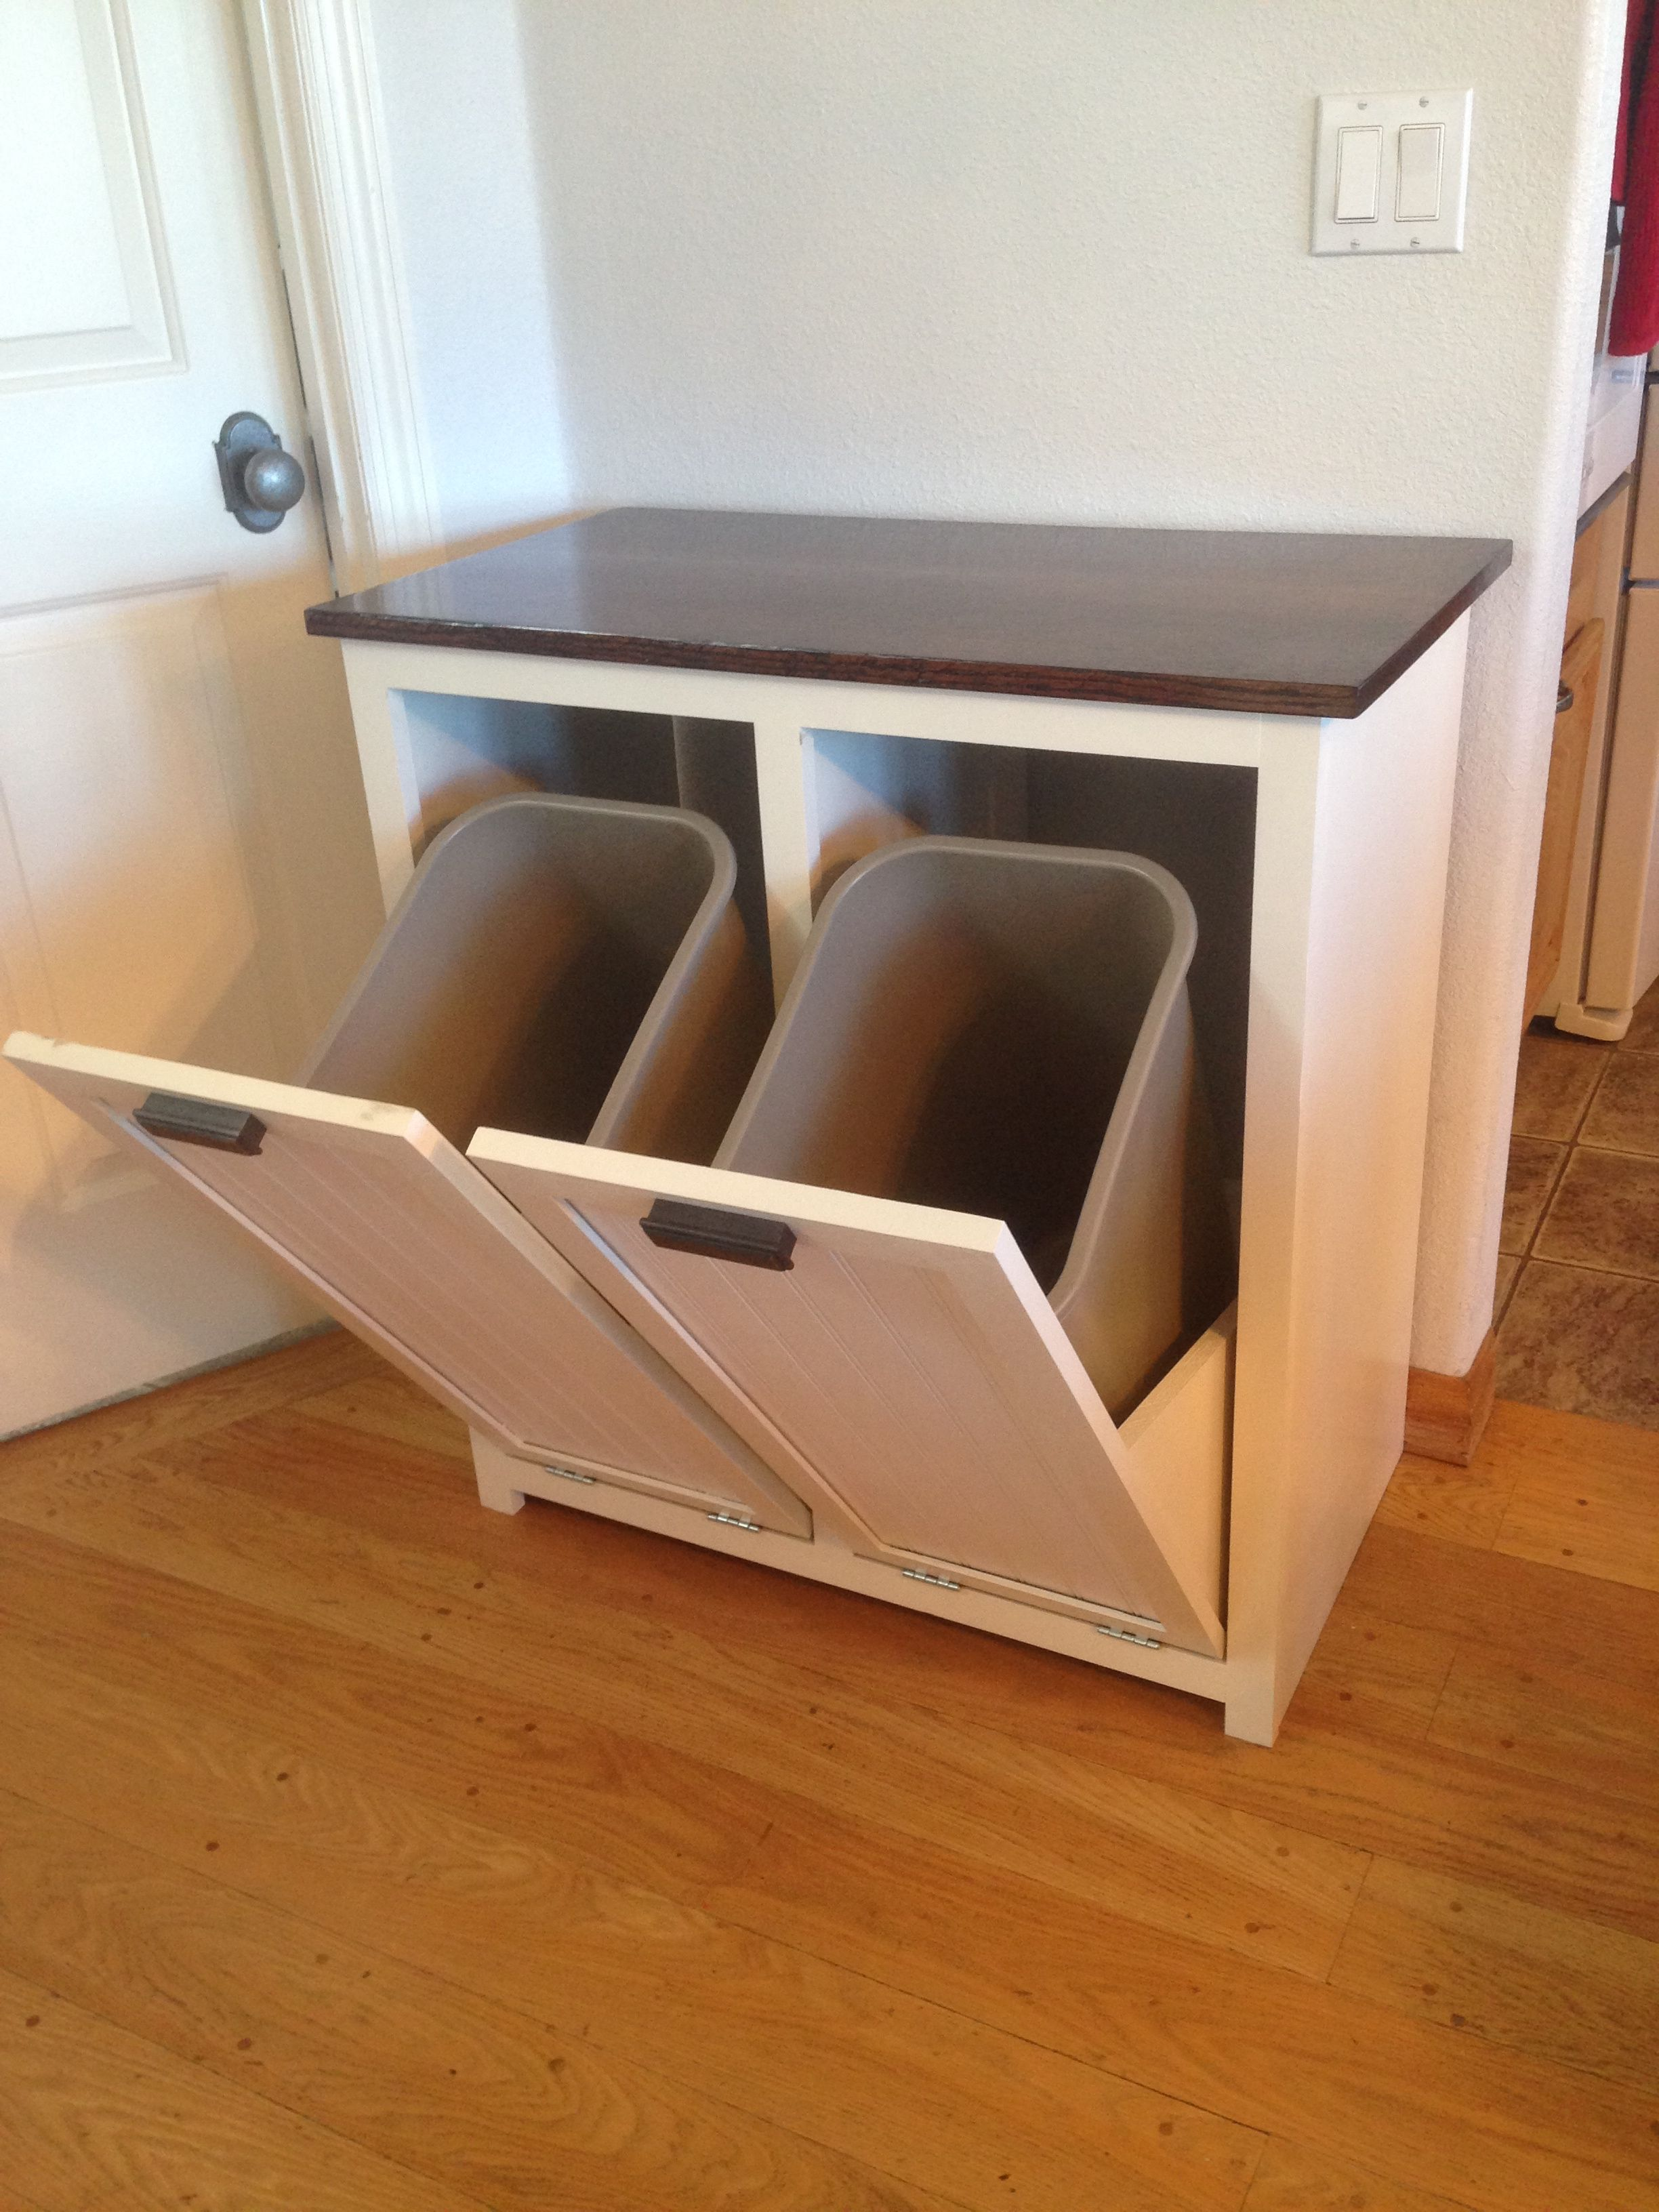 A tilt-out garbage and recycling cabinet. | People, Kitchens and House